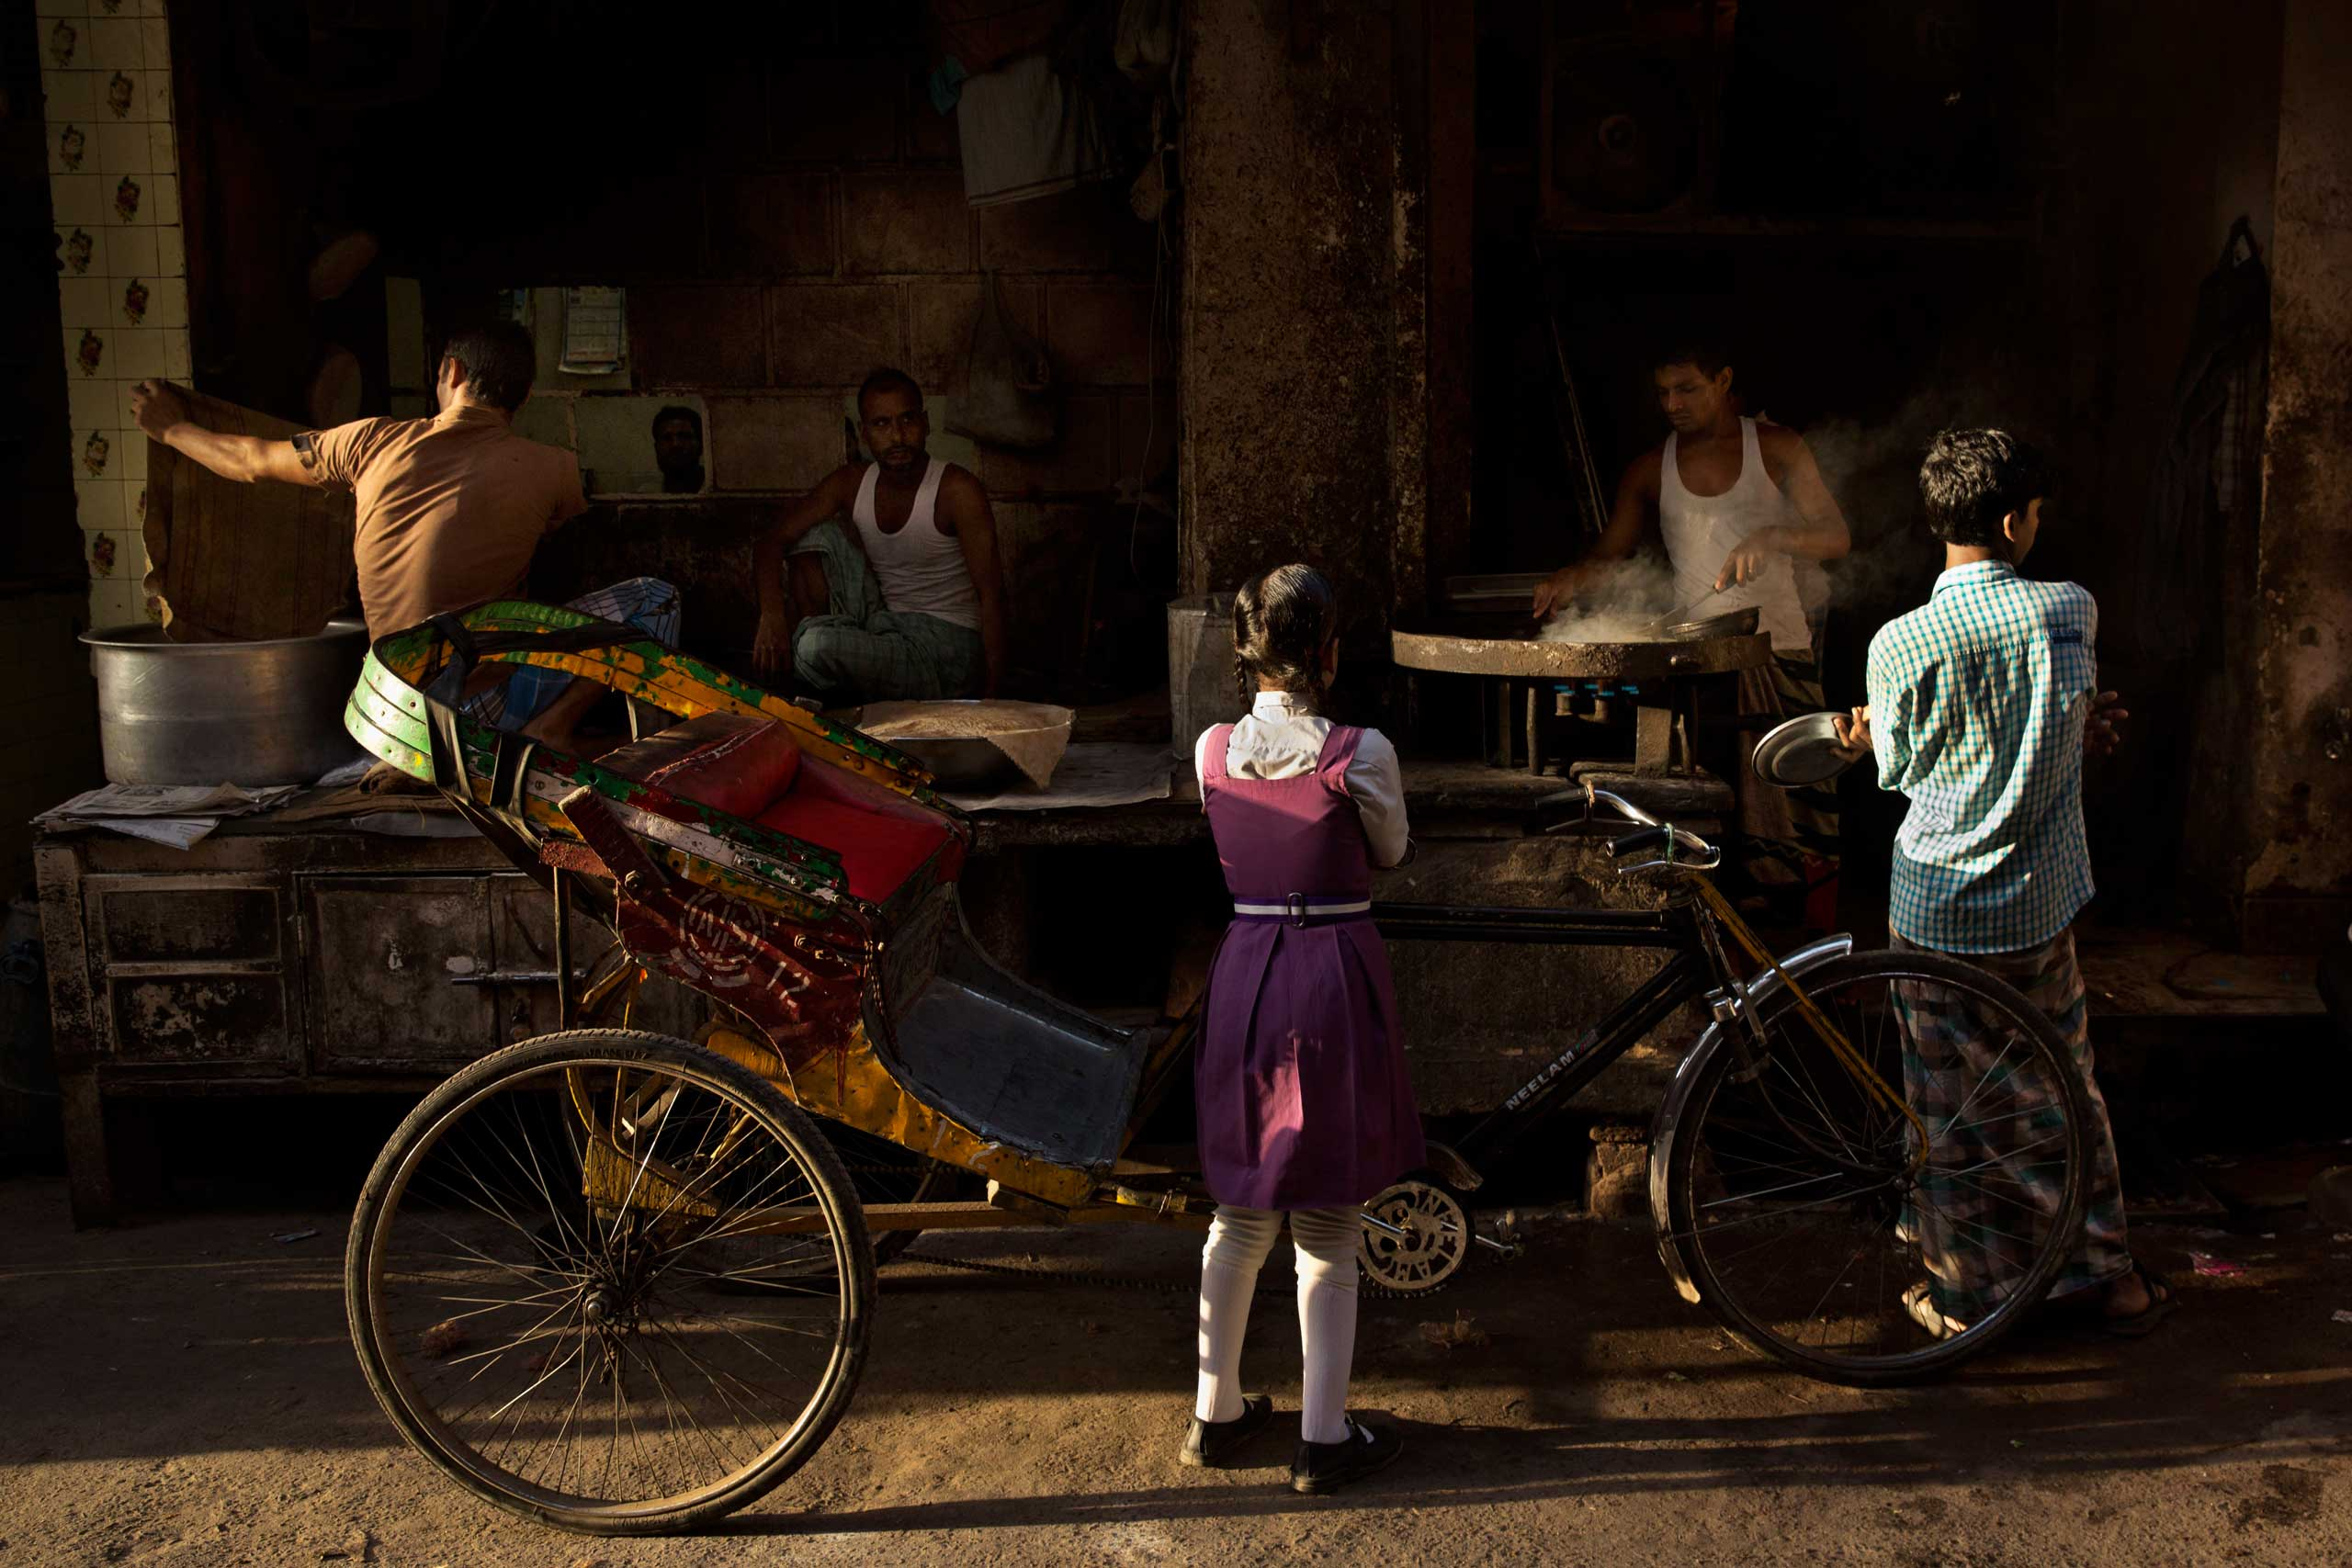 Sept. 22, 2014. An Indian schoolgirl and a boy wait to get breakfast in the old city area of New Delhi, India.